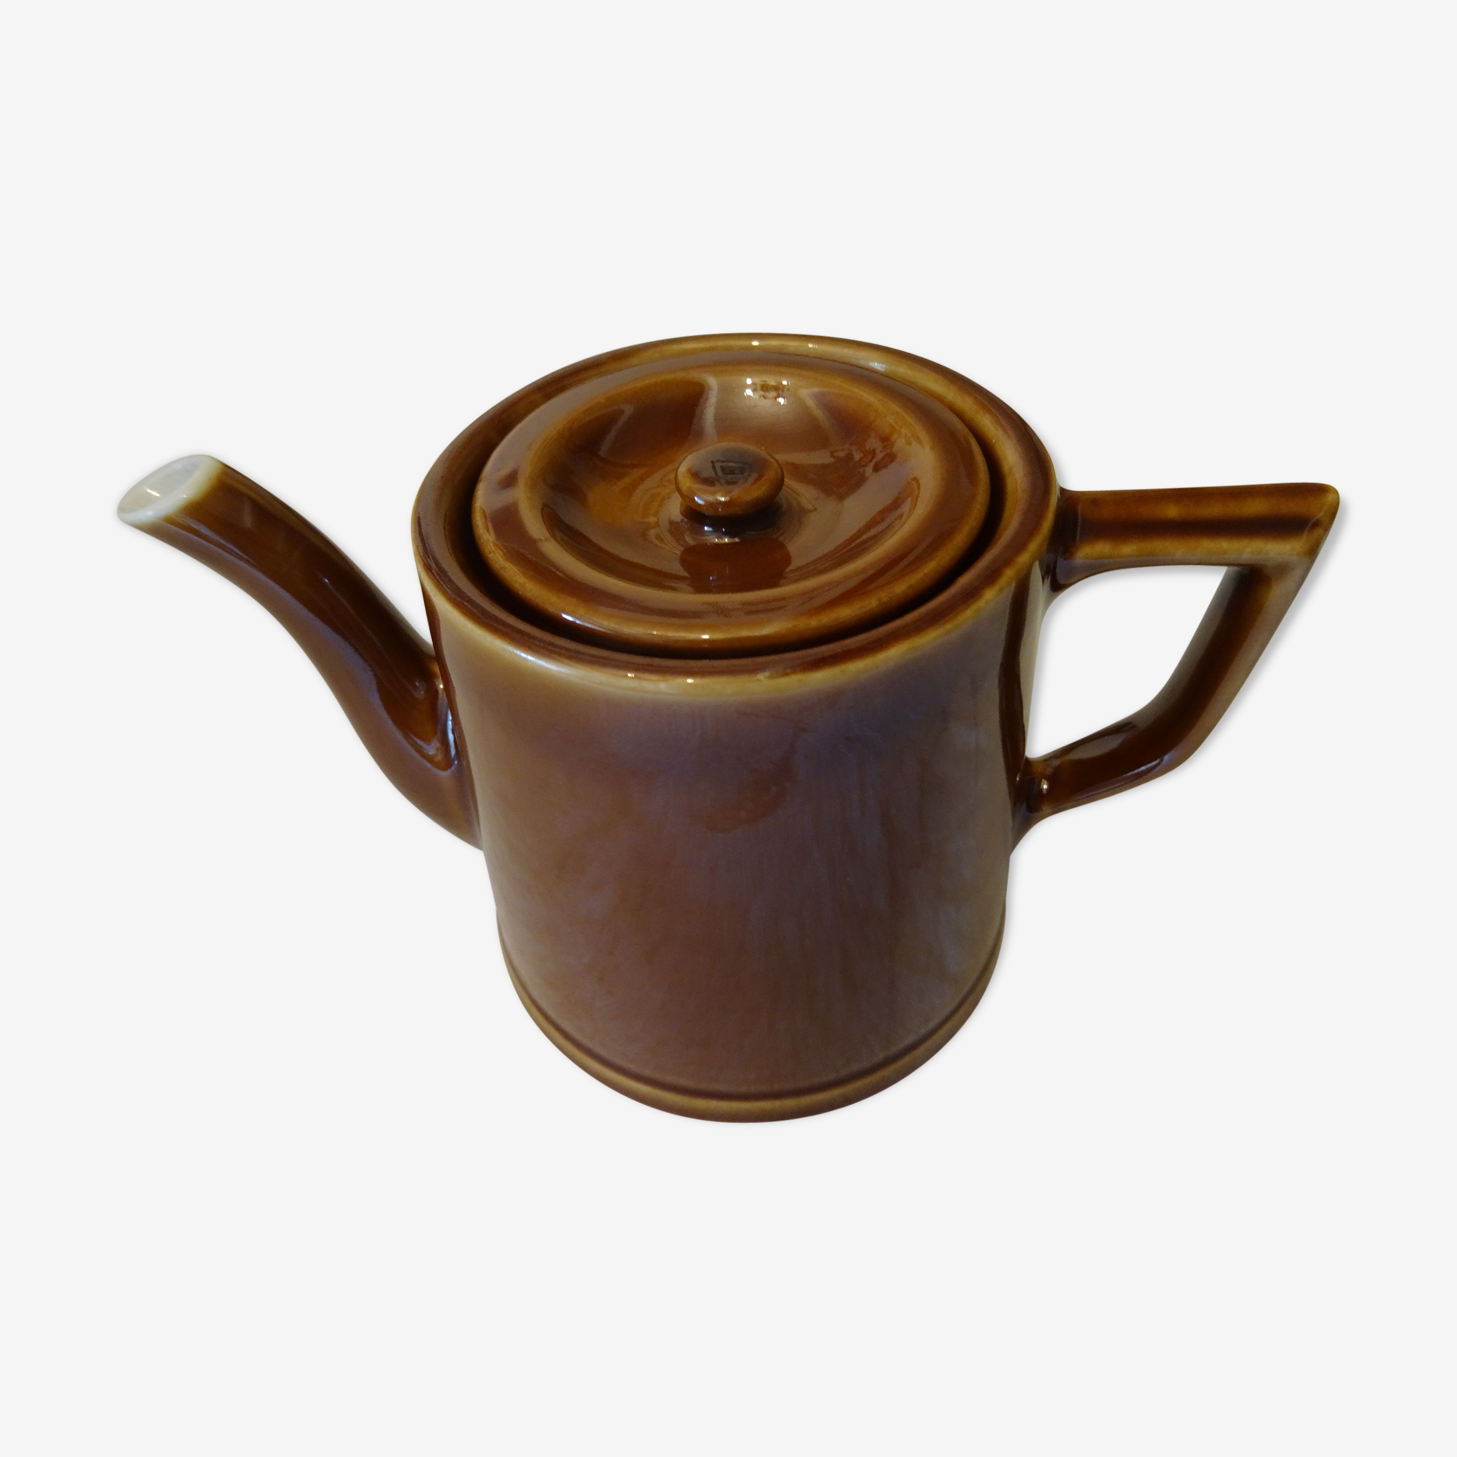 Vintage teapot in faience